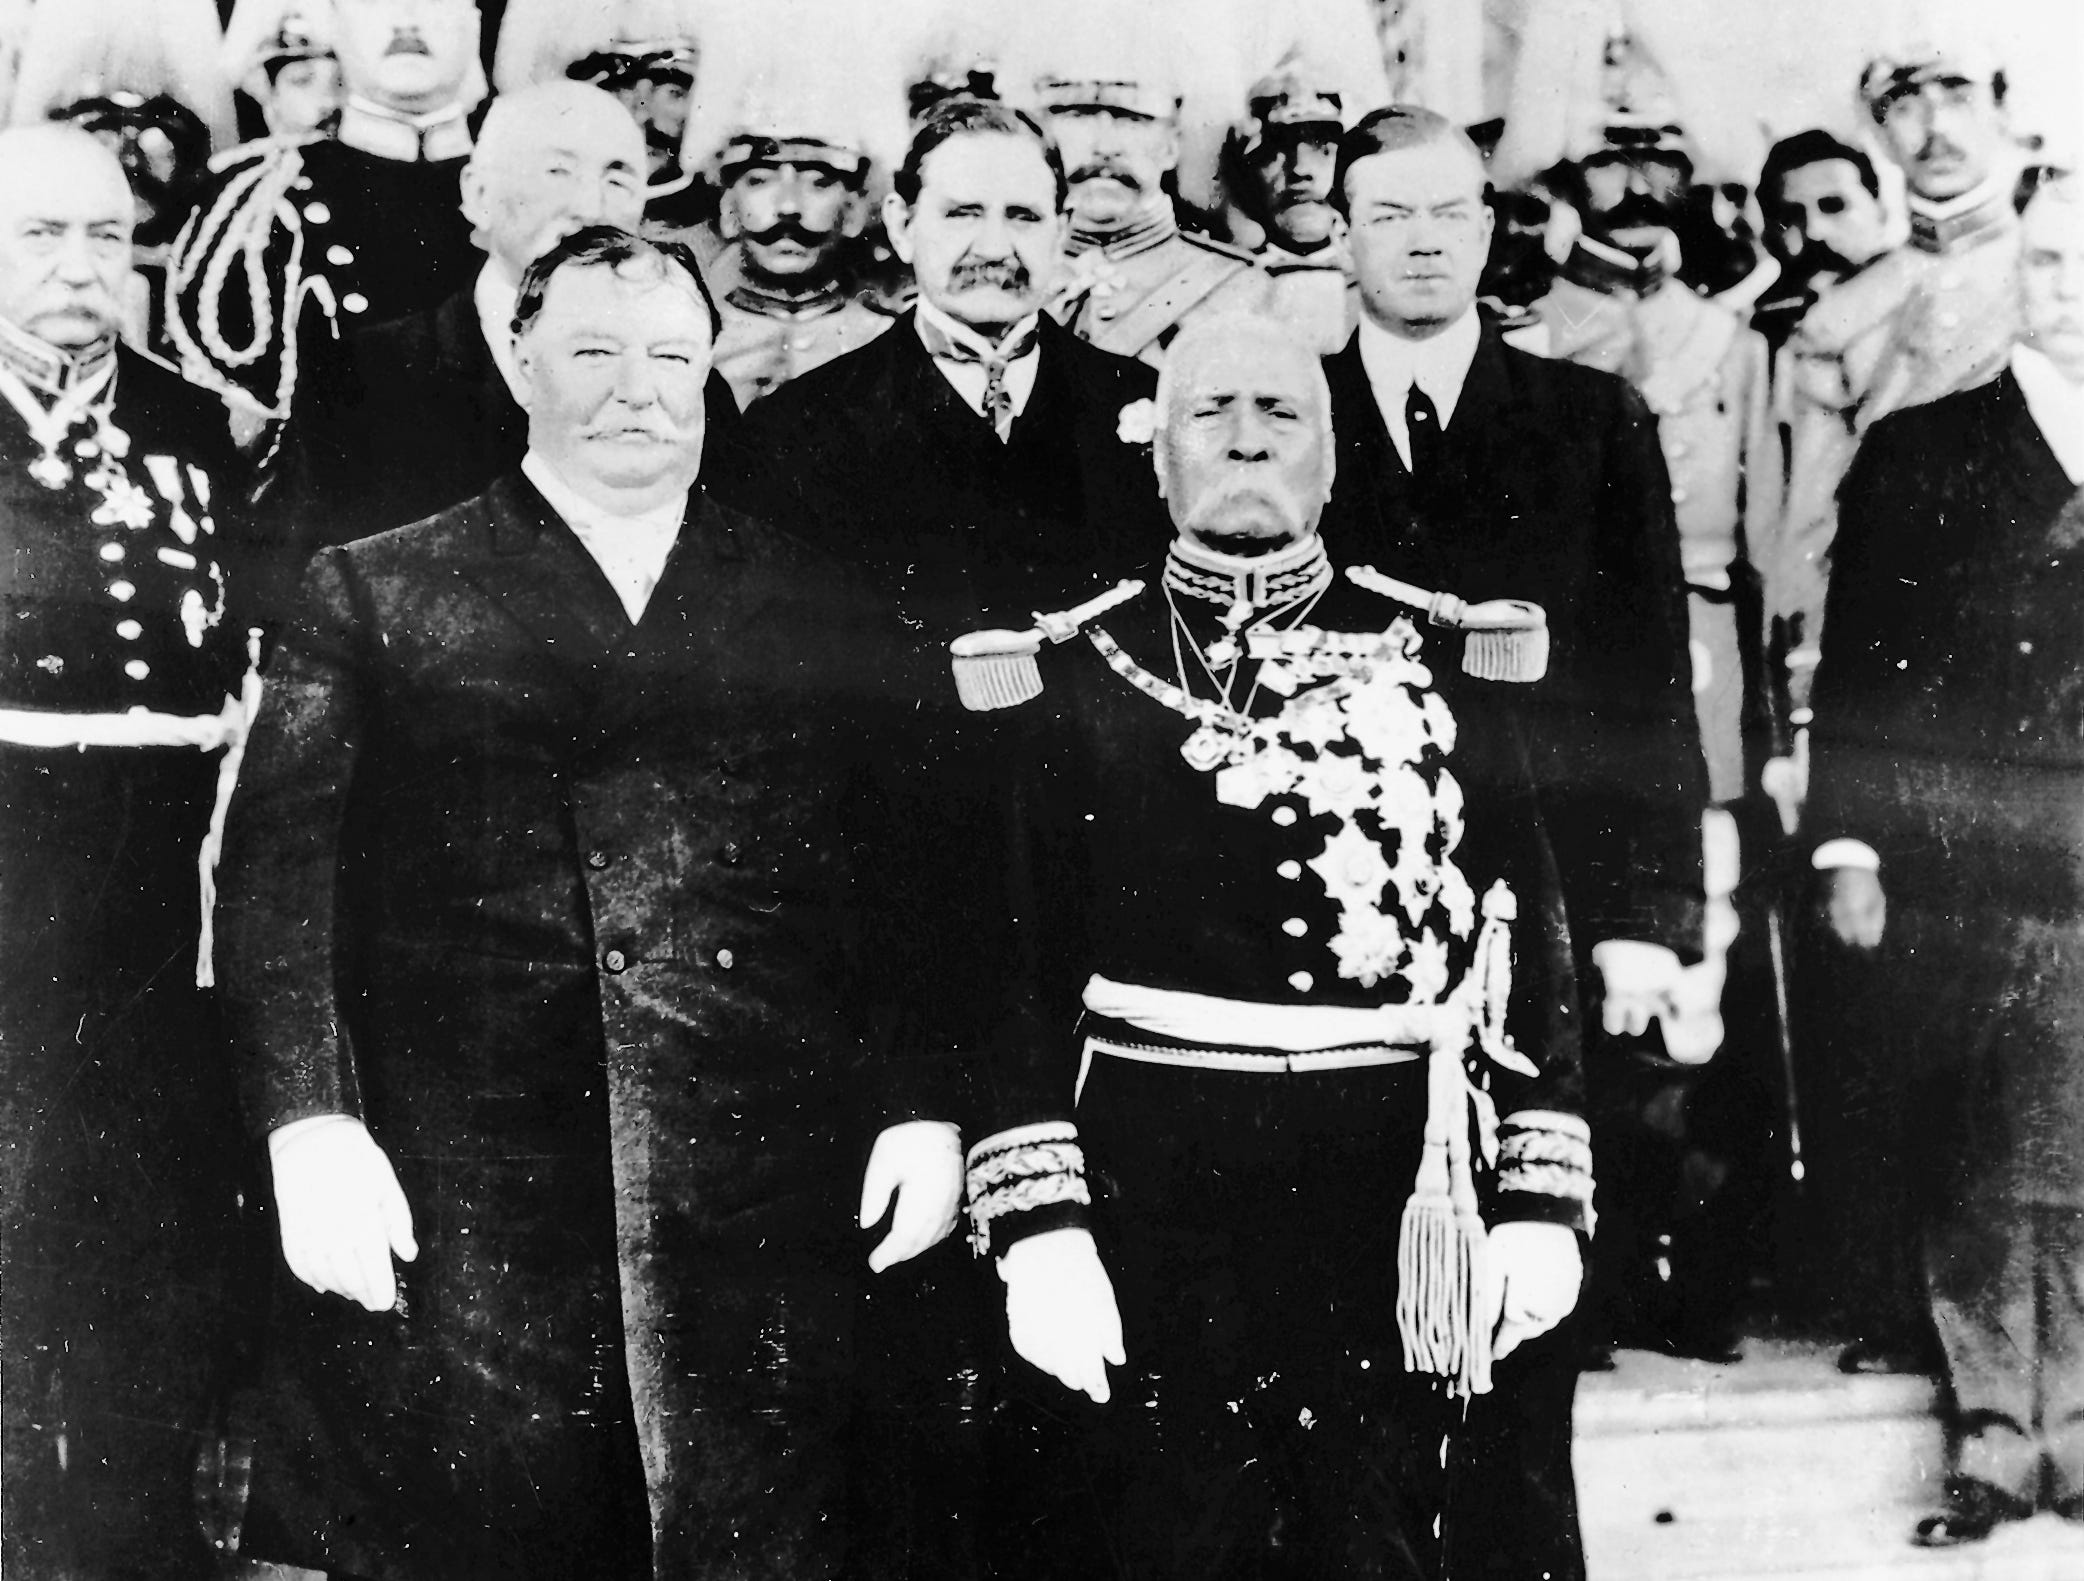 Presidents Taft, Diaz & dignitaries. 1909. Taken by Will Stuart. He had studio next to Alexanders. Copyrighted picture & Feldman copied and started putting them out so Stuart made him pay.